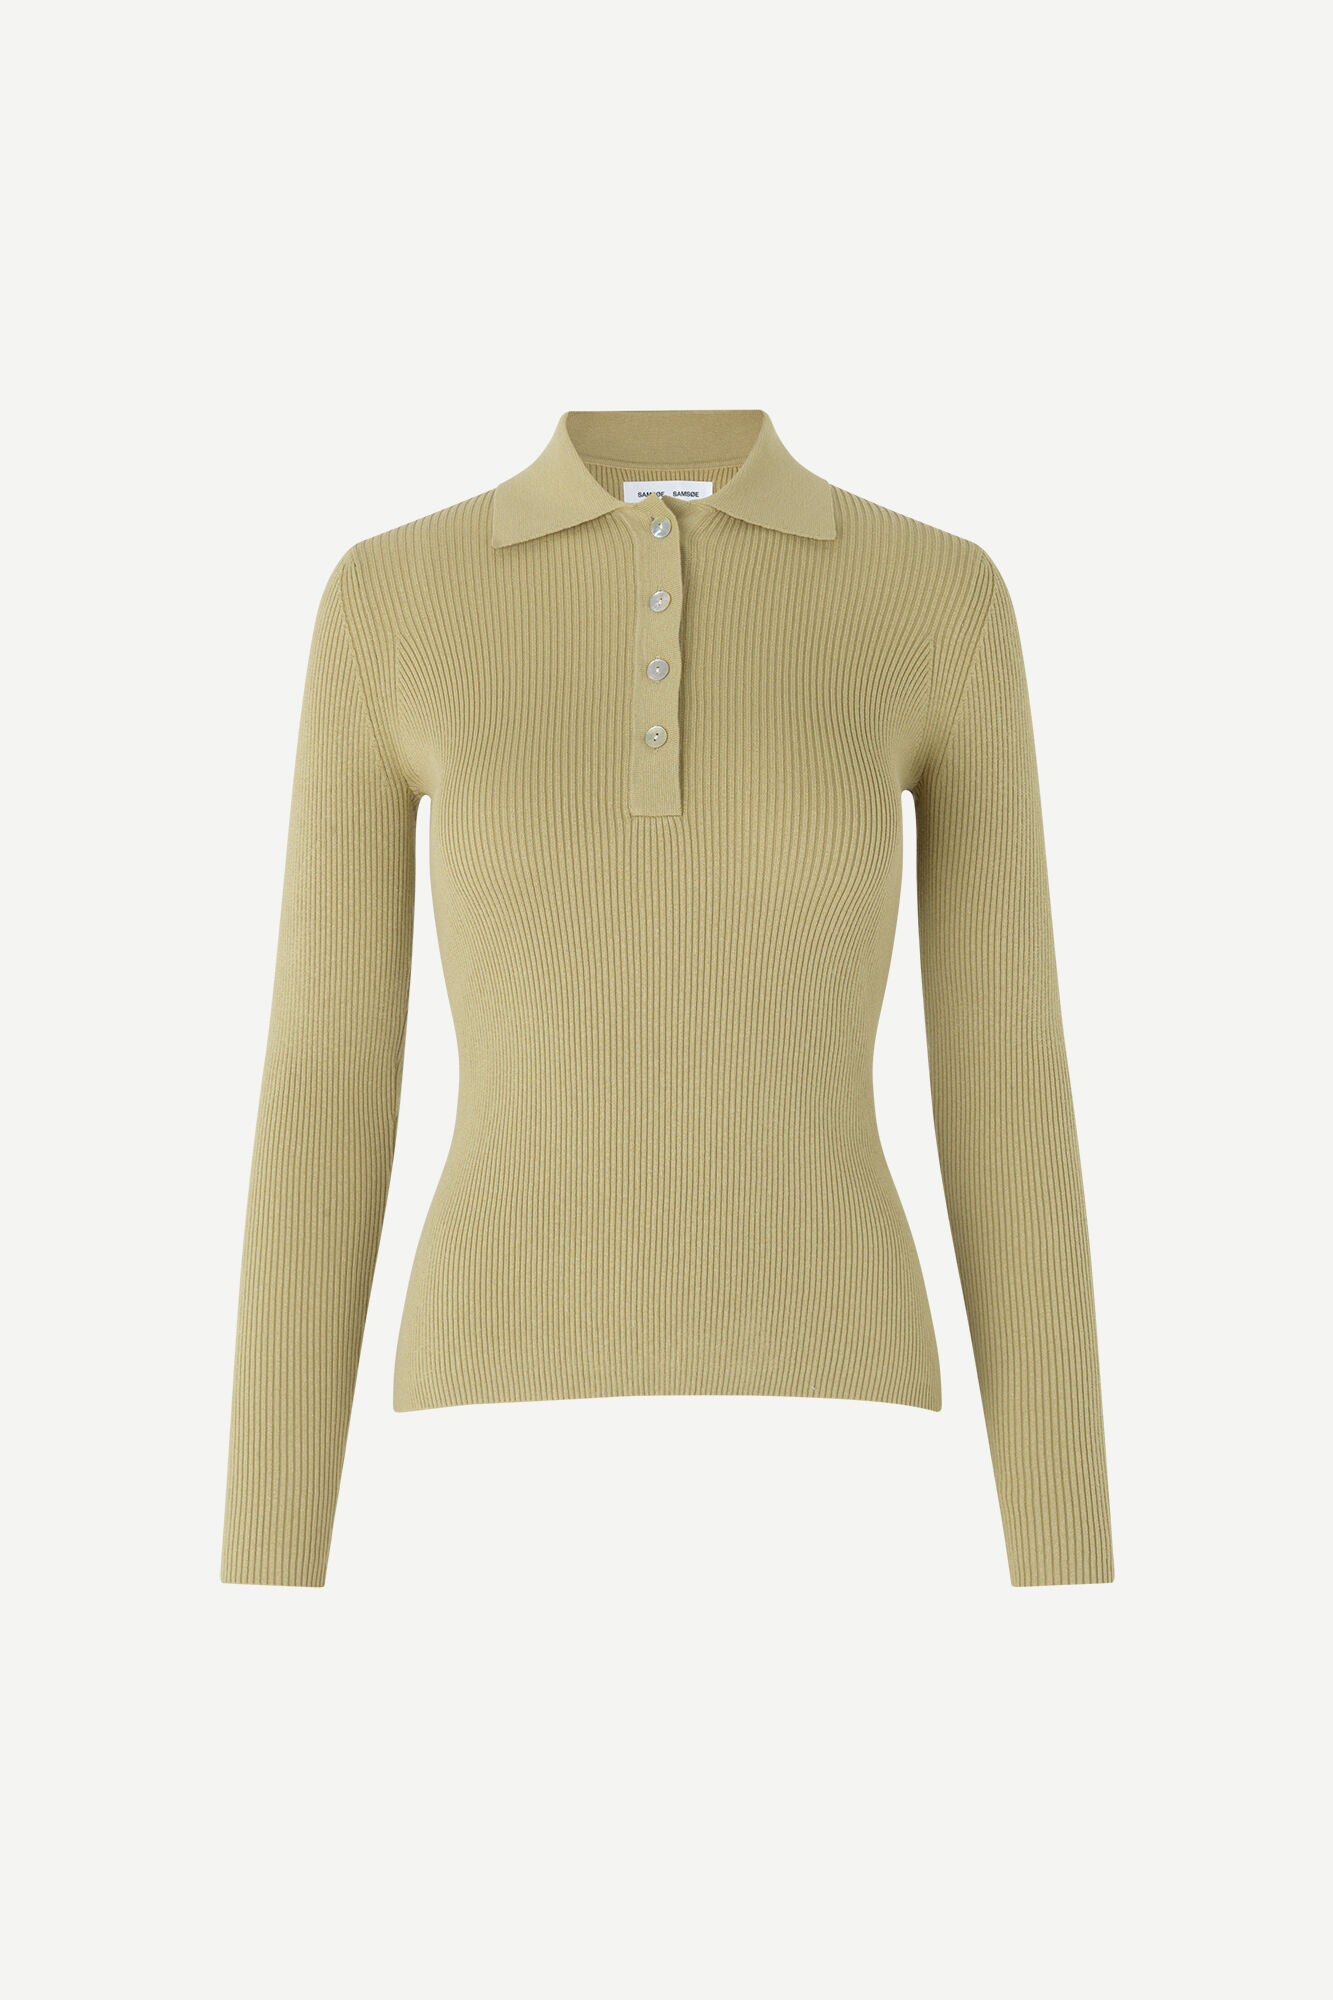 Samsøe Samsøe - Everly Polo - Sage Green